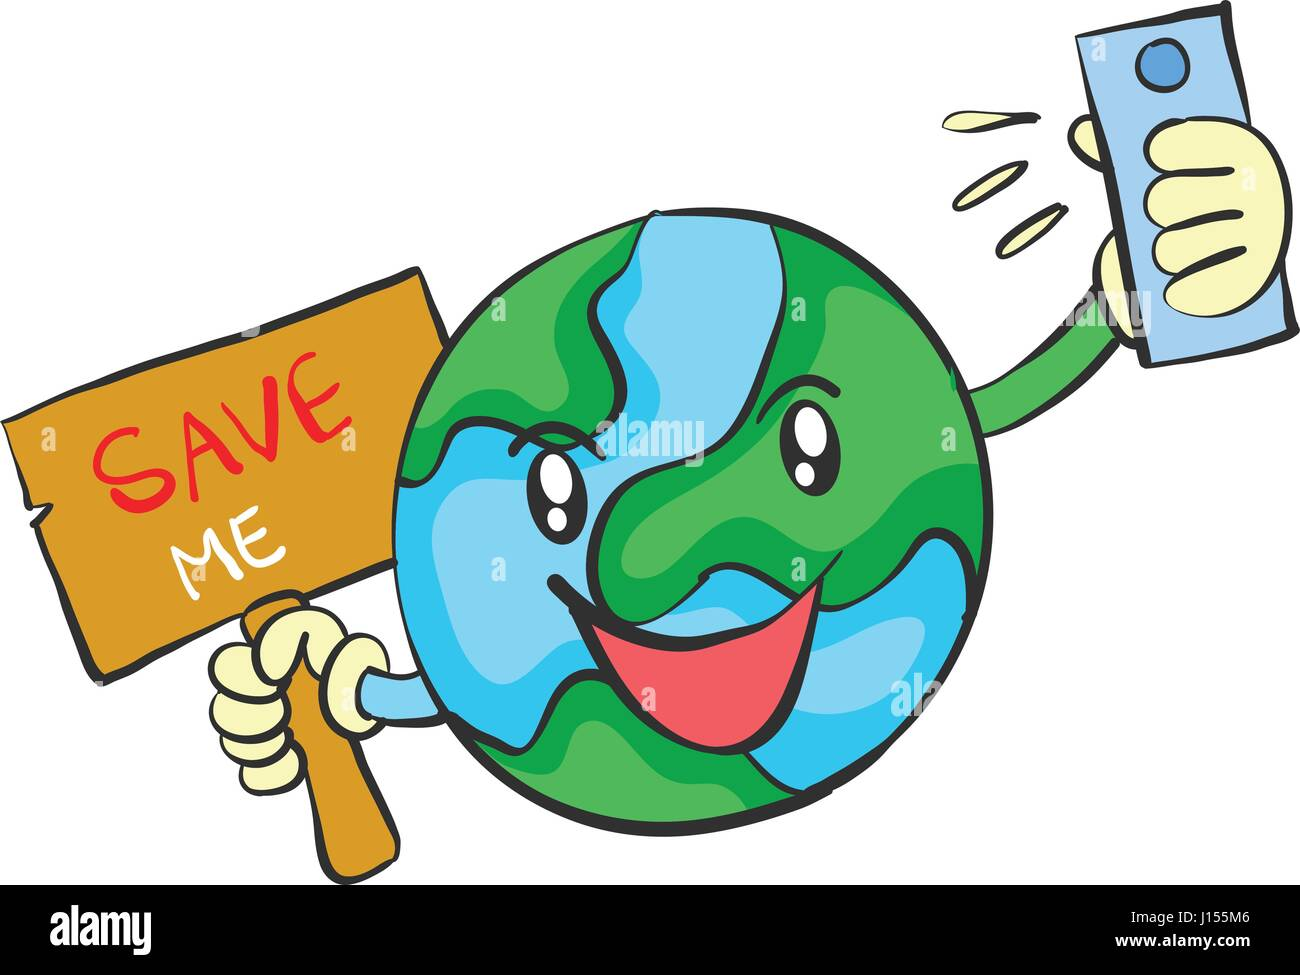 essay on vehicular pollution how to save earth With a view to reducing vehicular pollution, there has been a ban imposed  to  do what i can for my environment and protect it to the best i can.